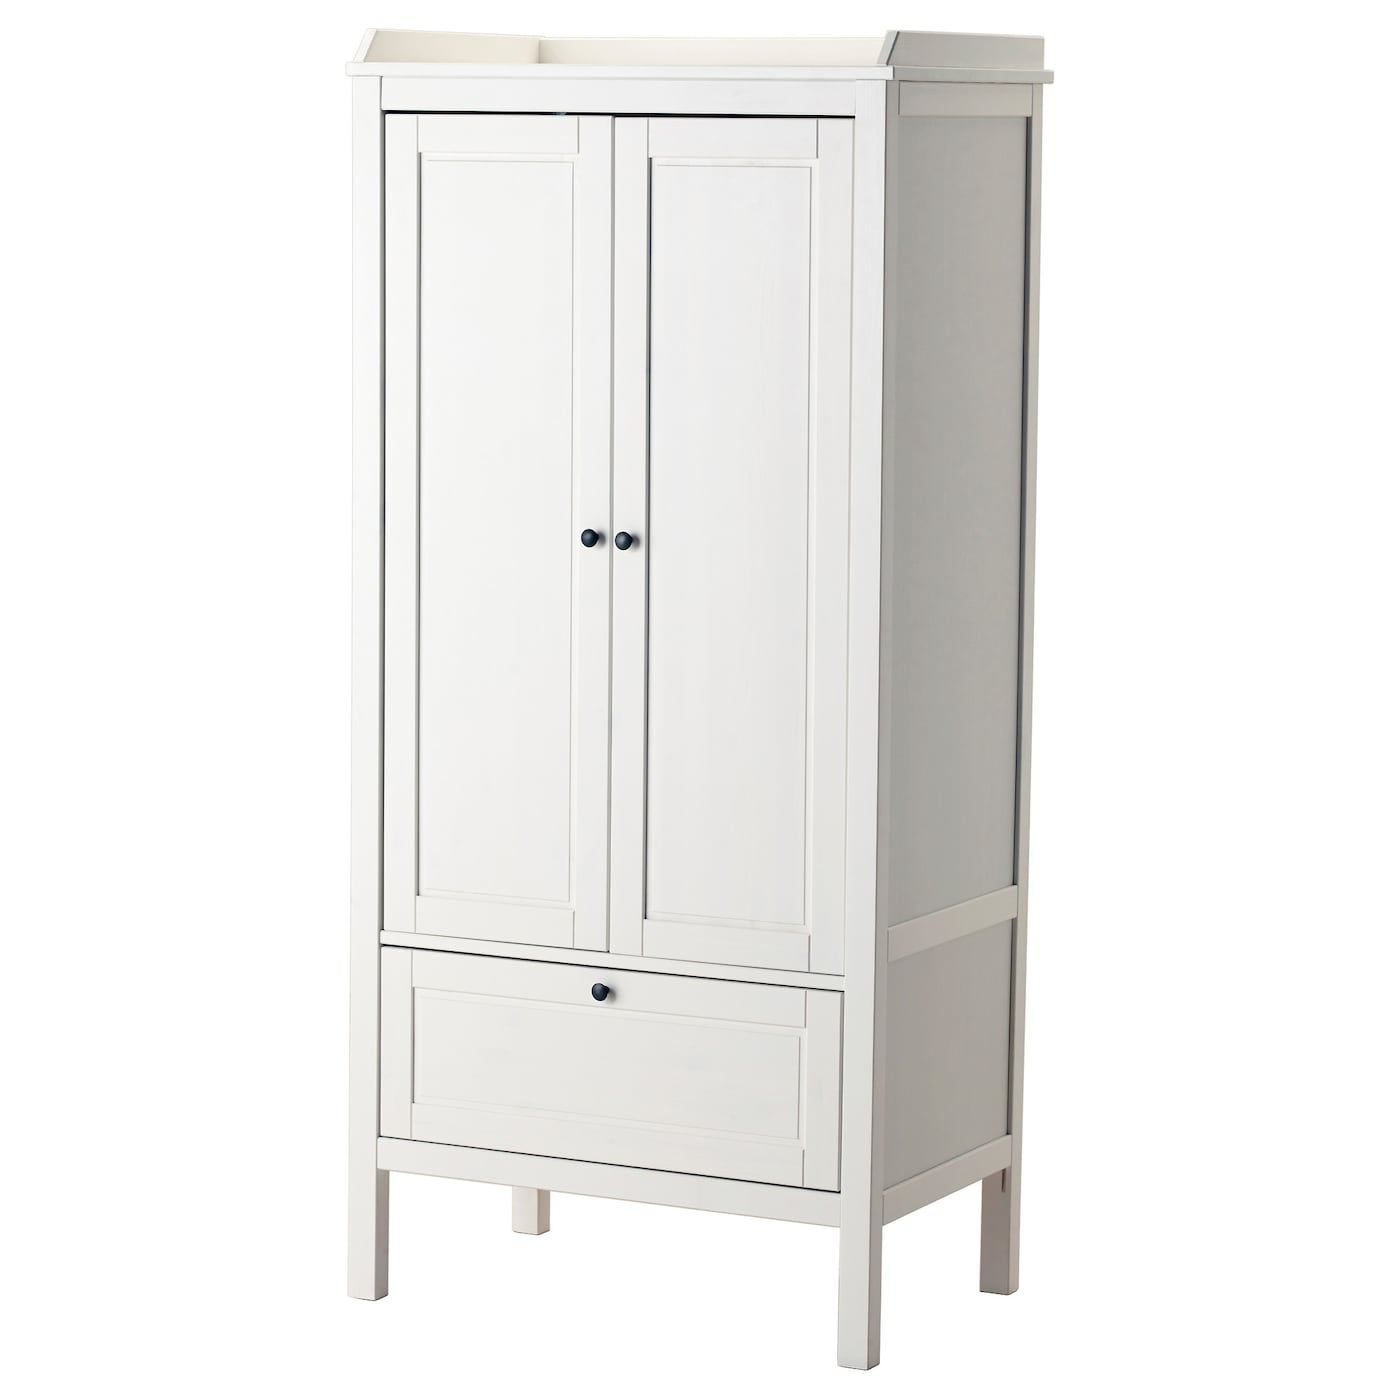 sundvik armoire blanc 80x50x171 cm ikea. Black Bedroom Furniture Sets. Home Design Ideas